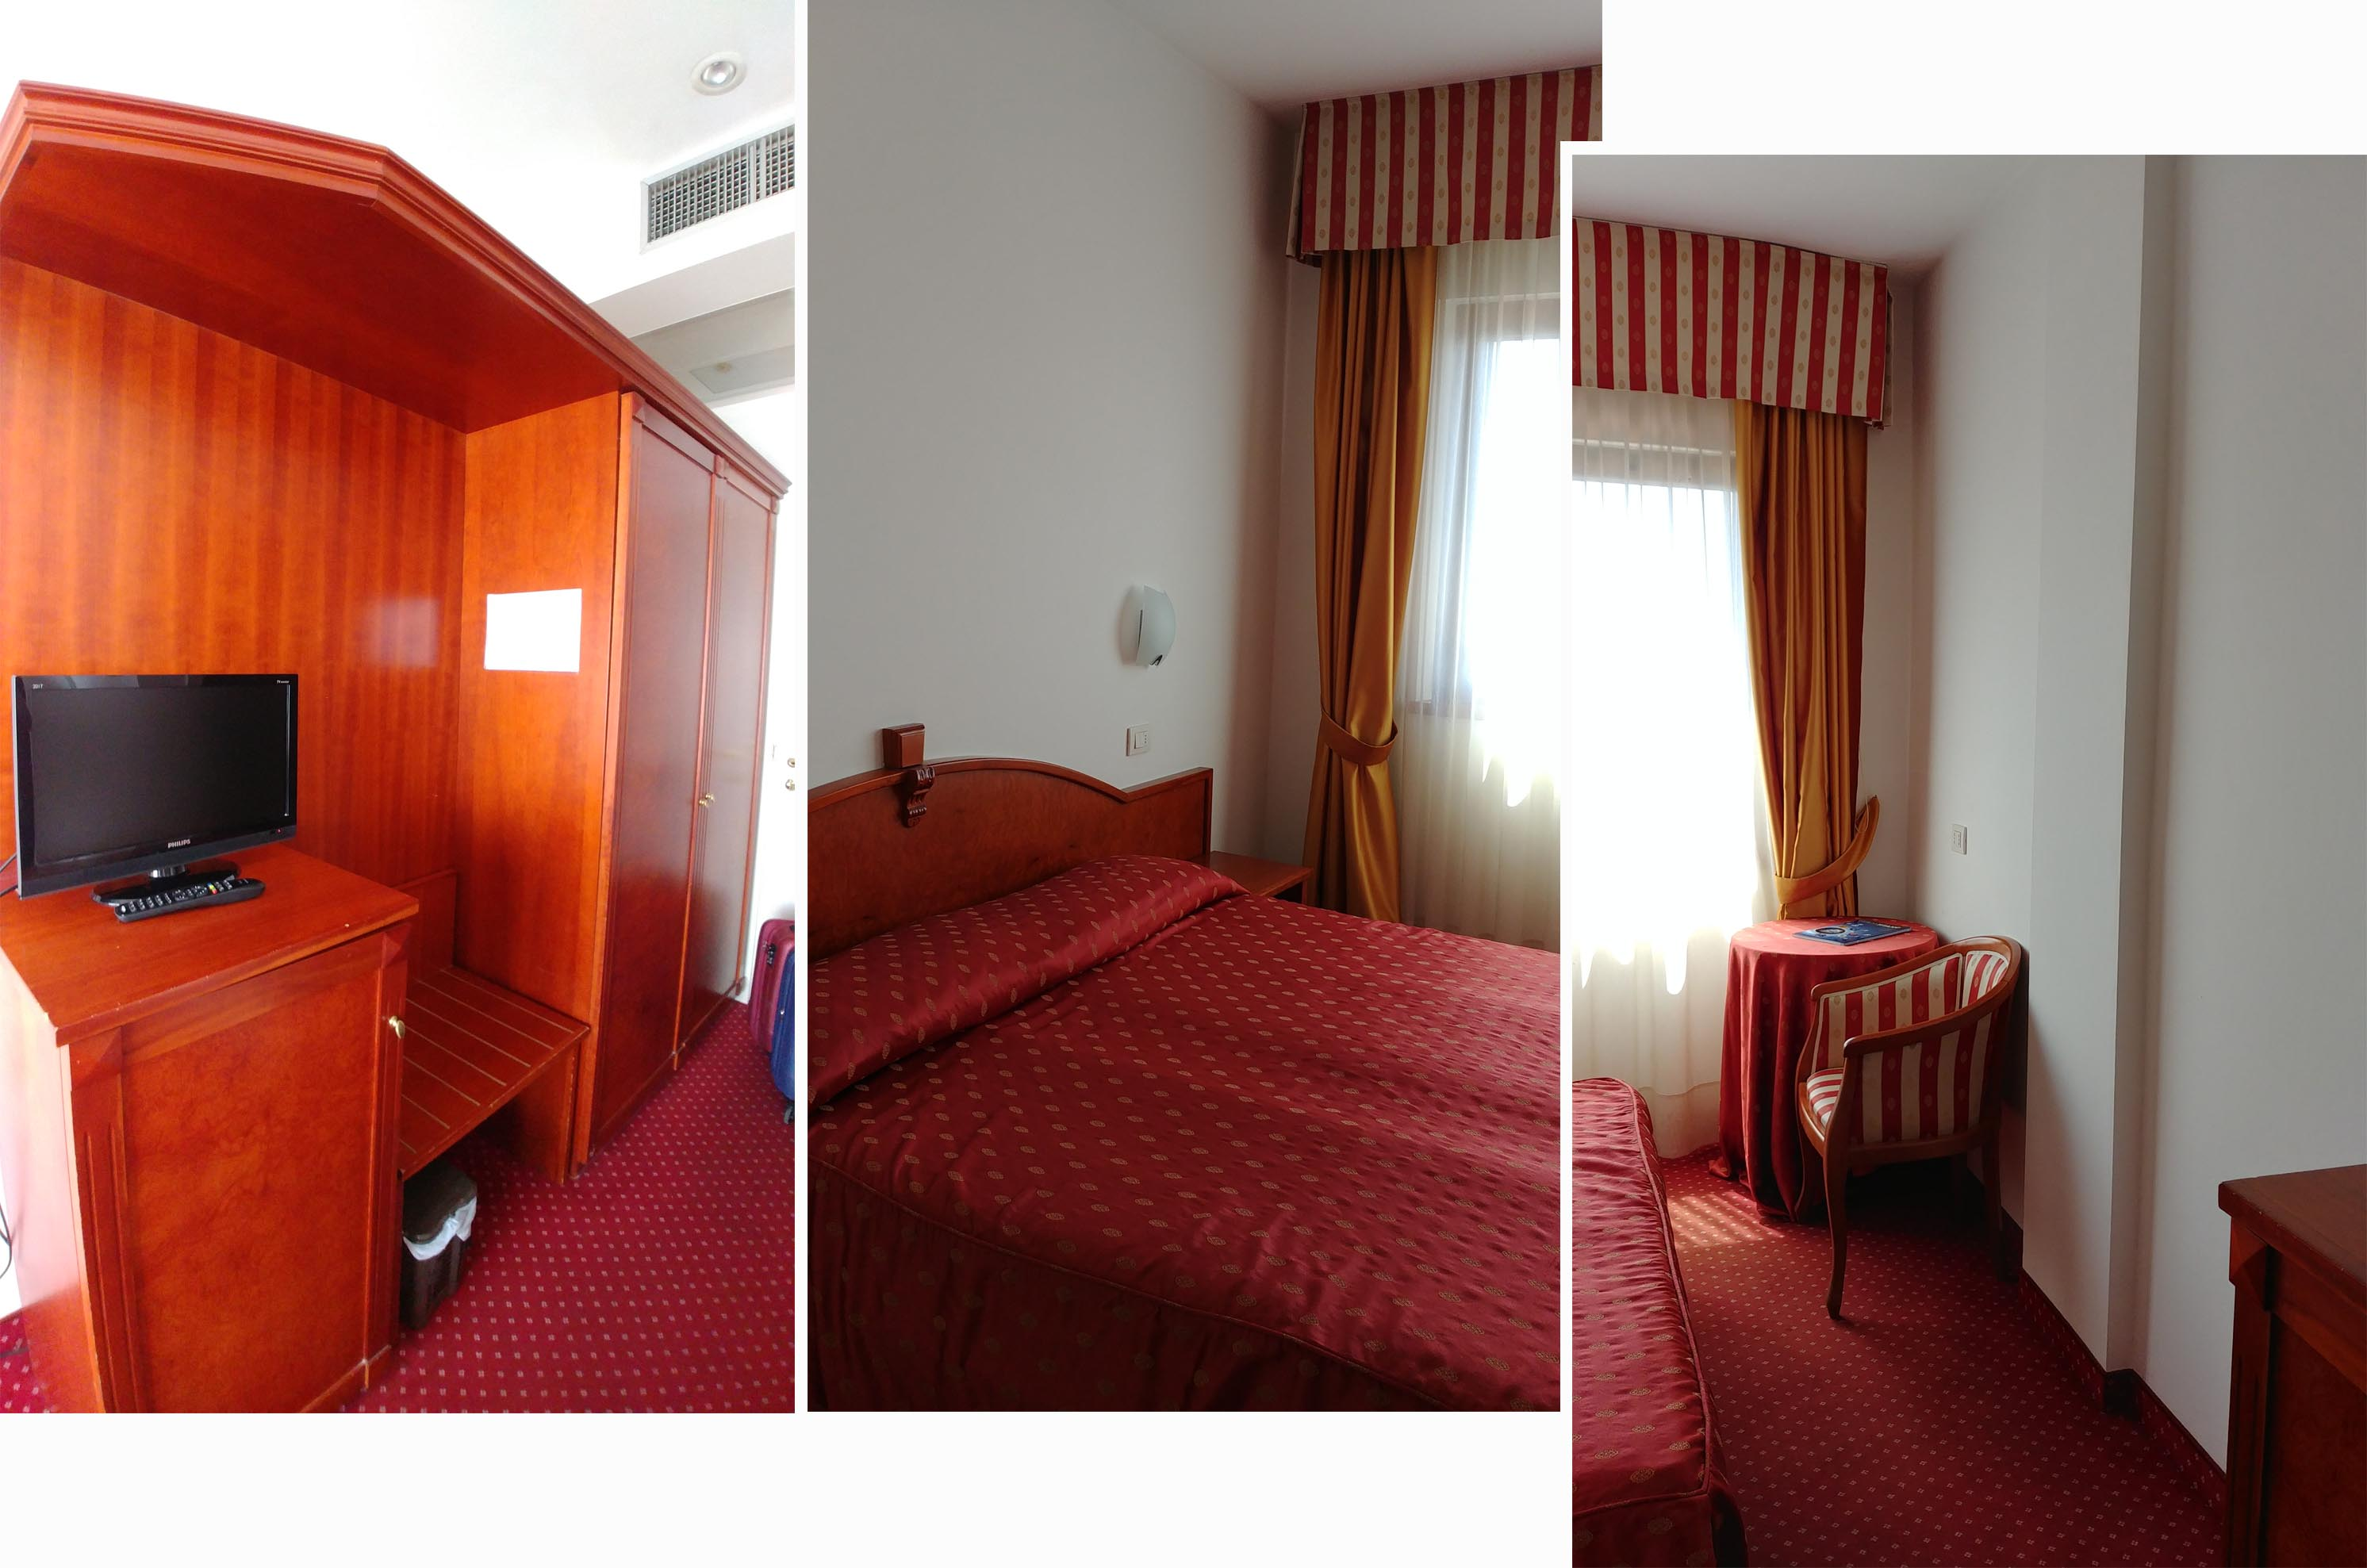 Our double room at Hotel Joli